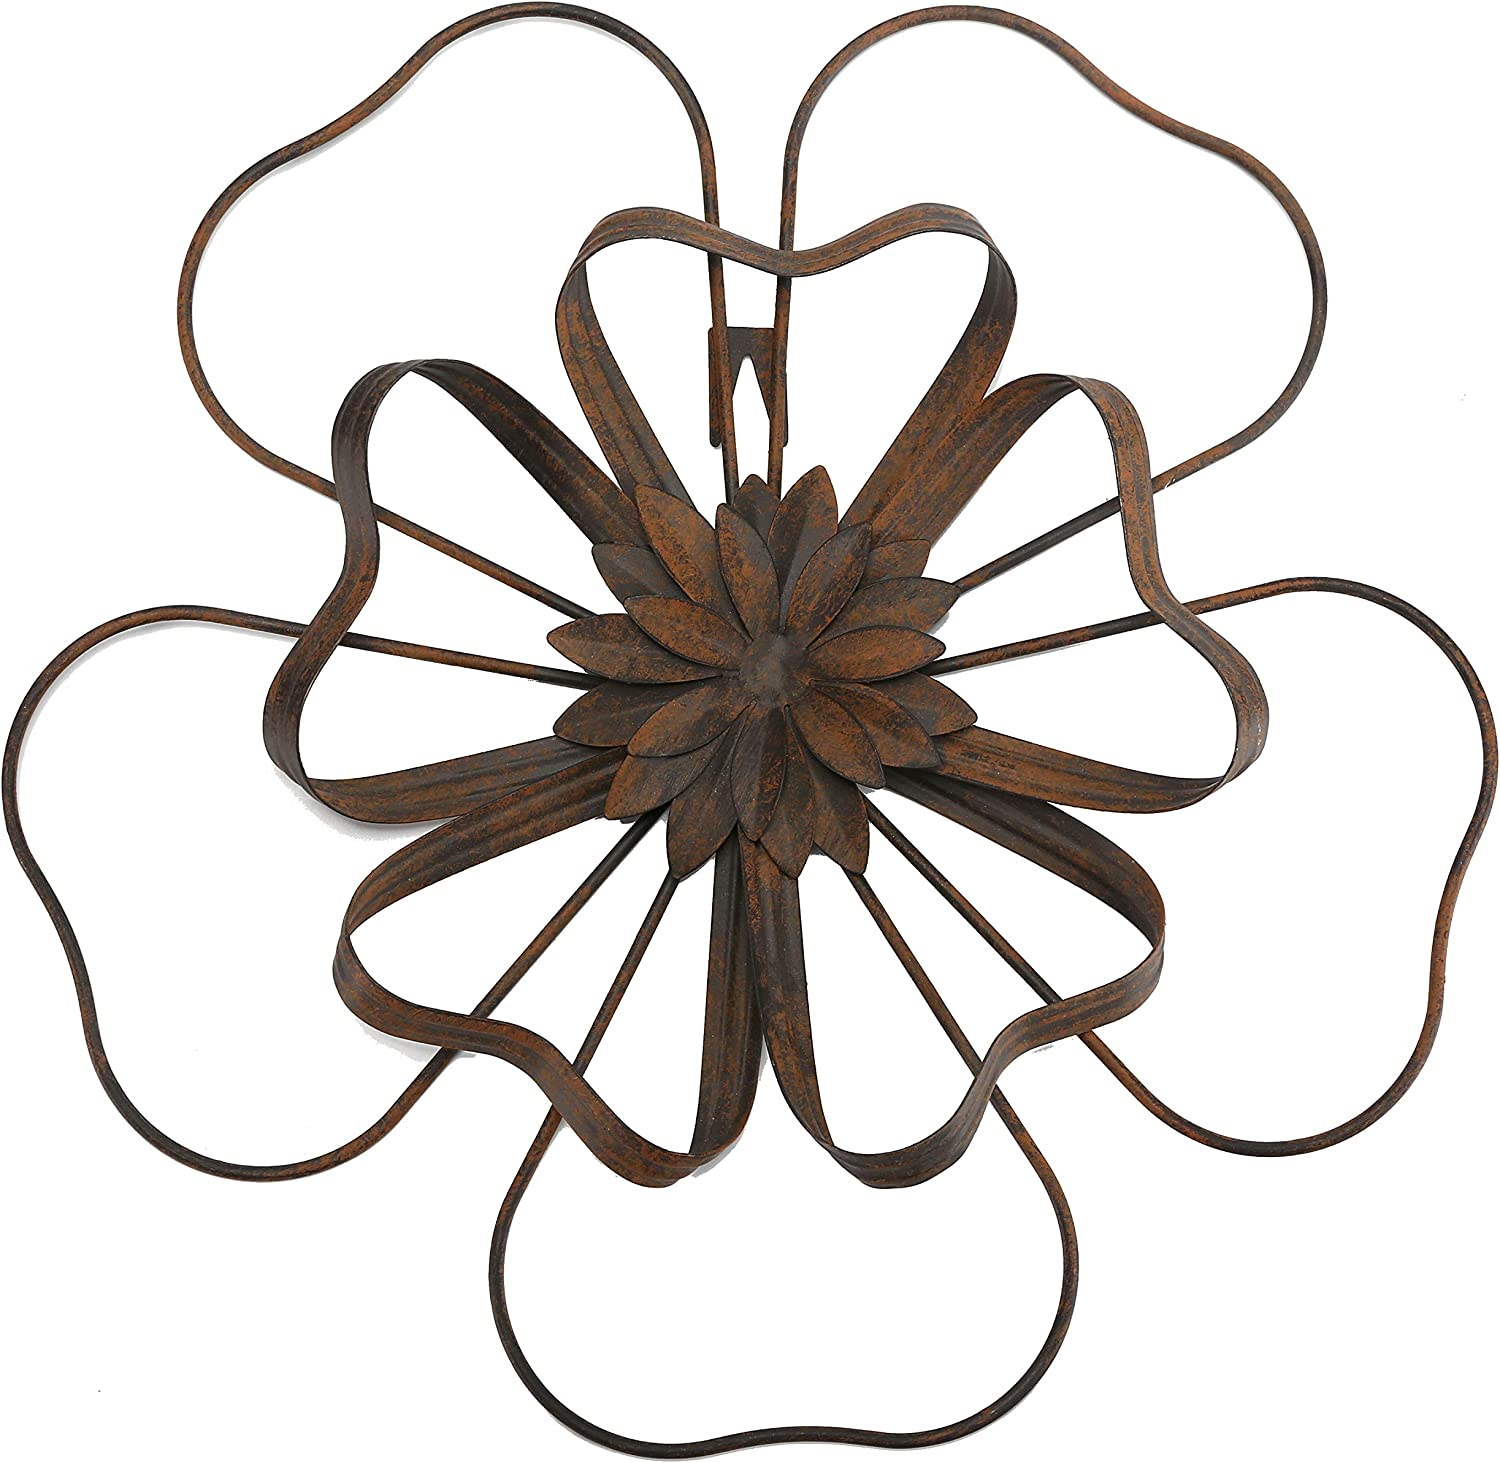 "Scwhousi Metal Flower Wall Decor Outdoor Garden Wall Art Sculpture,Rustic(14.25"" 1.75"")"